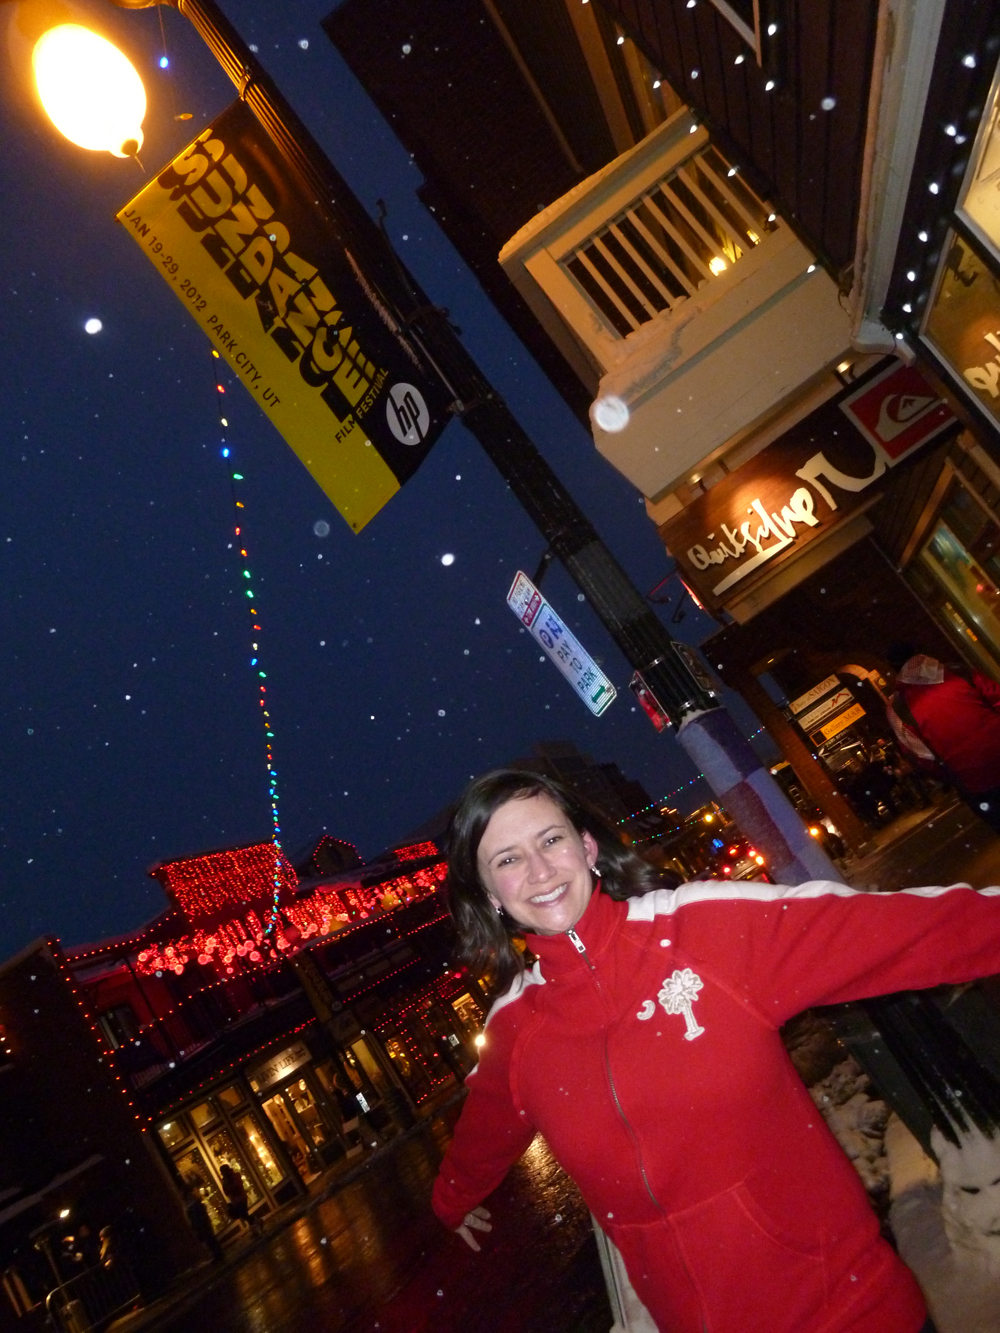 TDH Producer/Director Maria White Mebane shows her S.C. pride on Main St. in Park City.